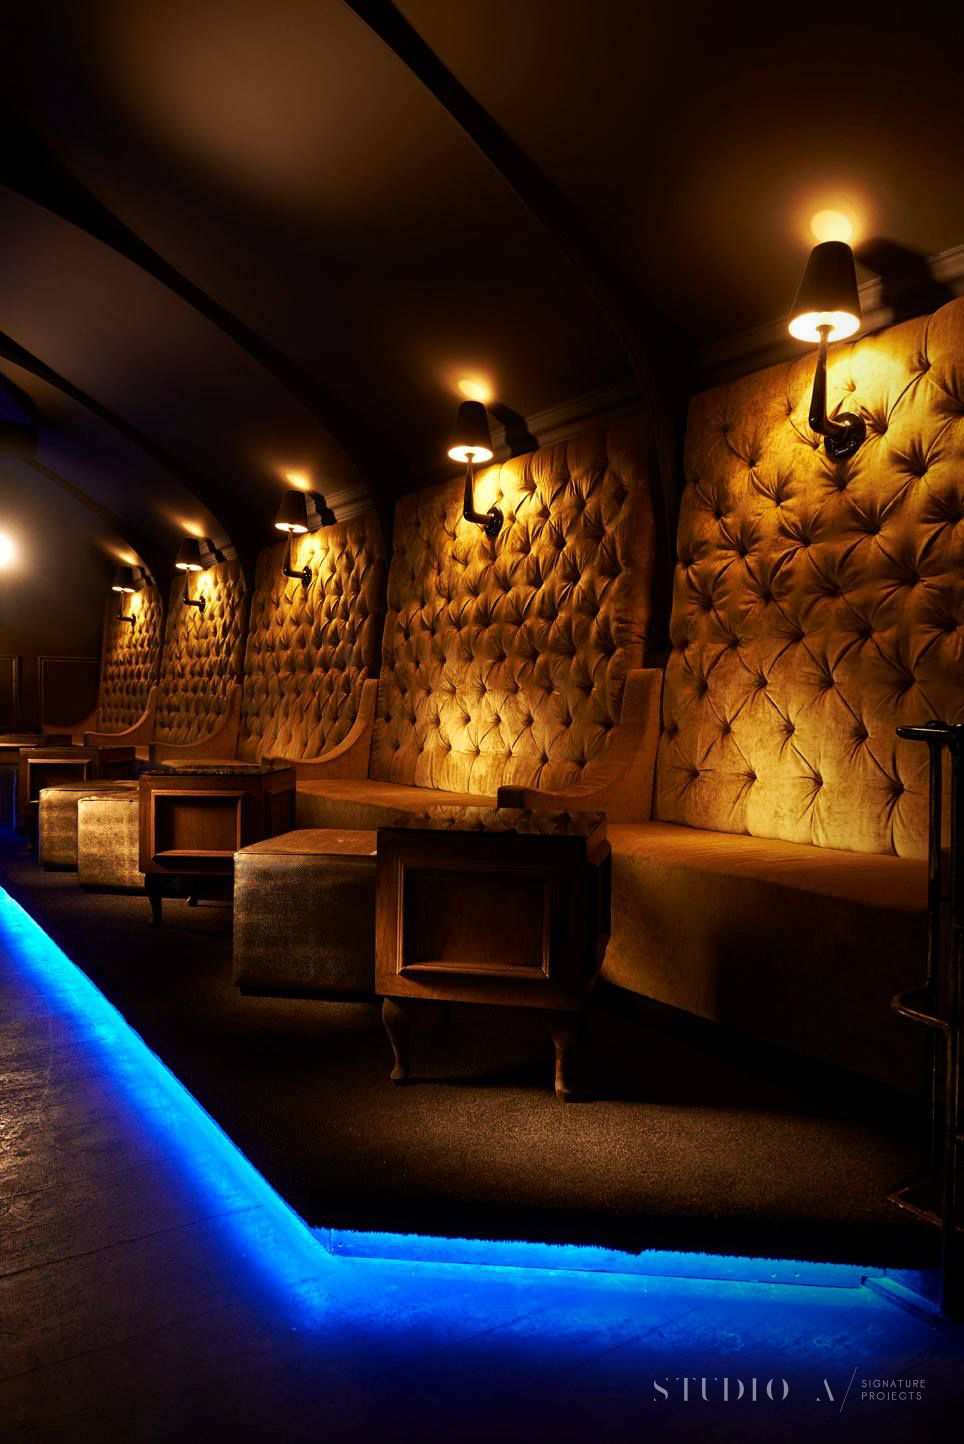 studio a signature projects cape town south africa coco bar nightclub design bar. Black Bedroom Furniture Sets. Home Design Ideas